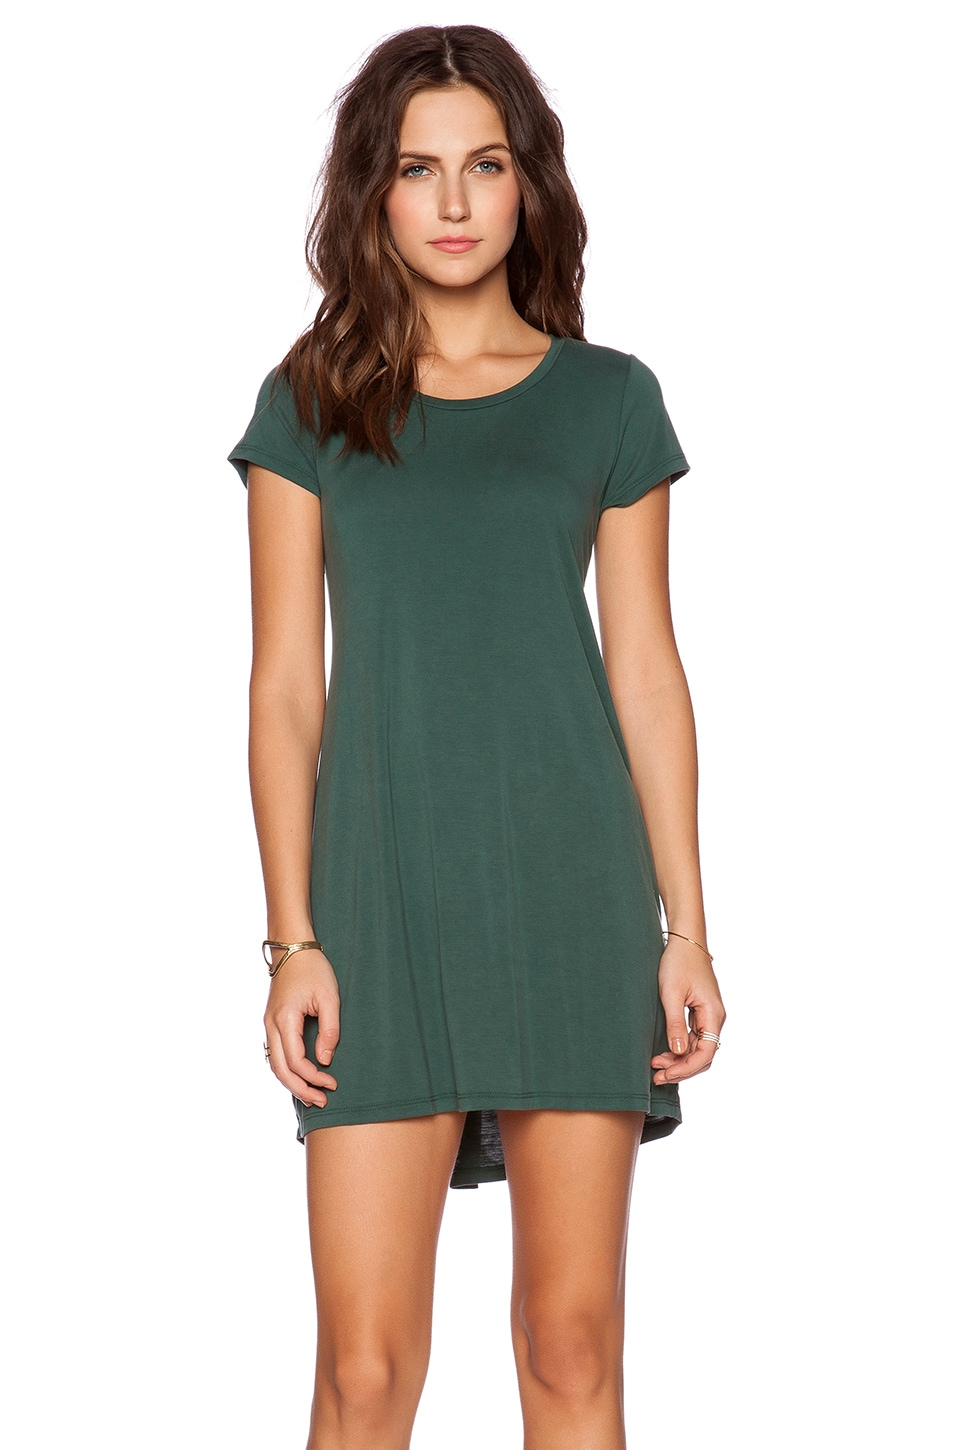 Michael Lauren Cuba T Shirt Dress in Dark Green | REVOLVE